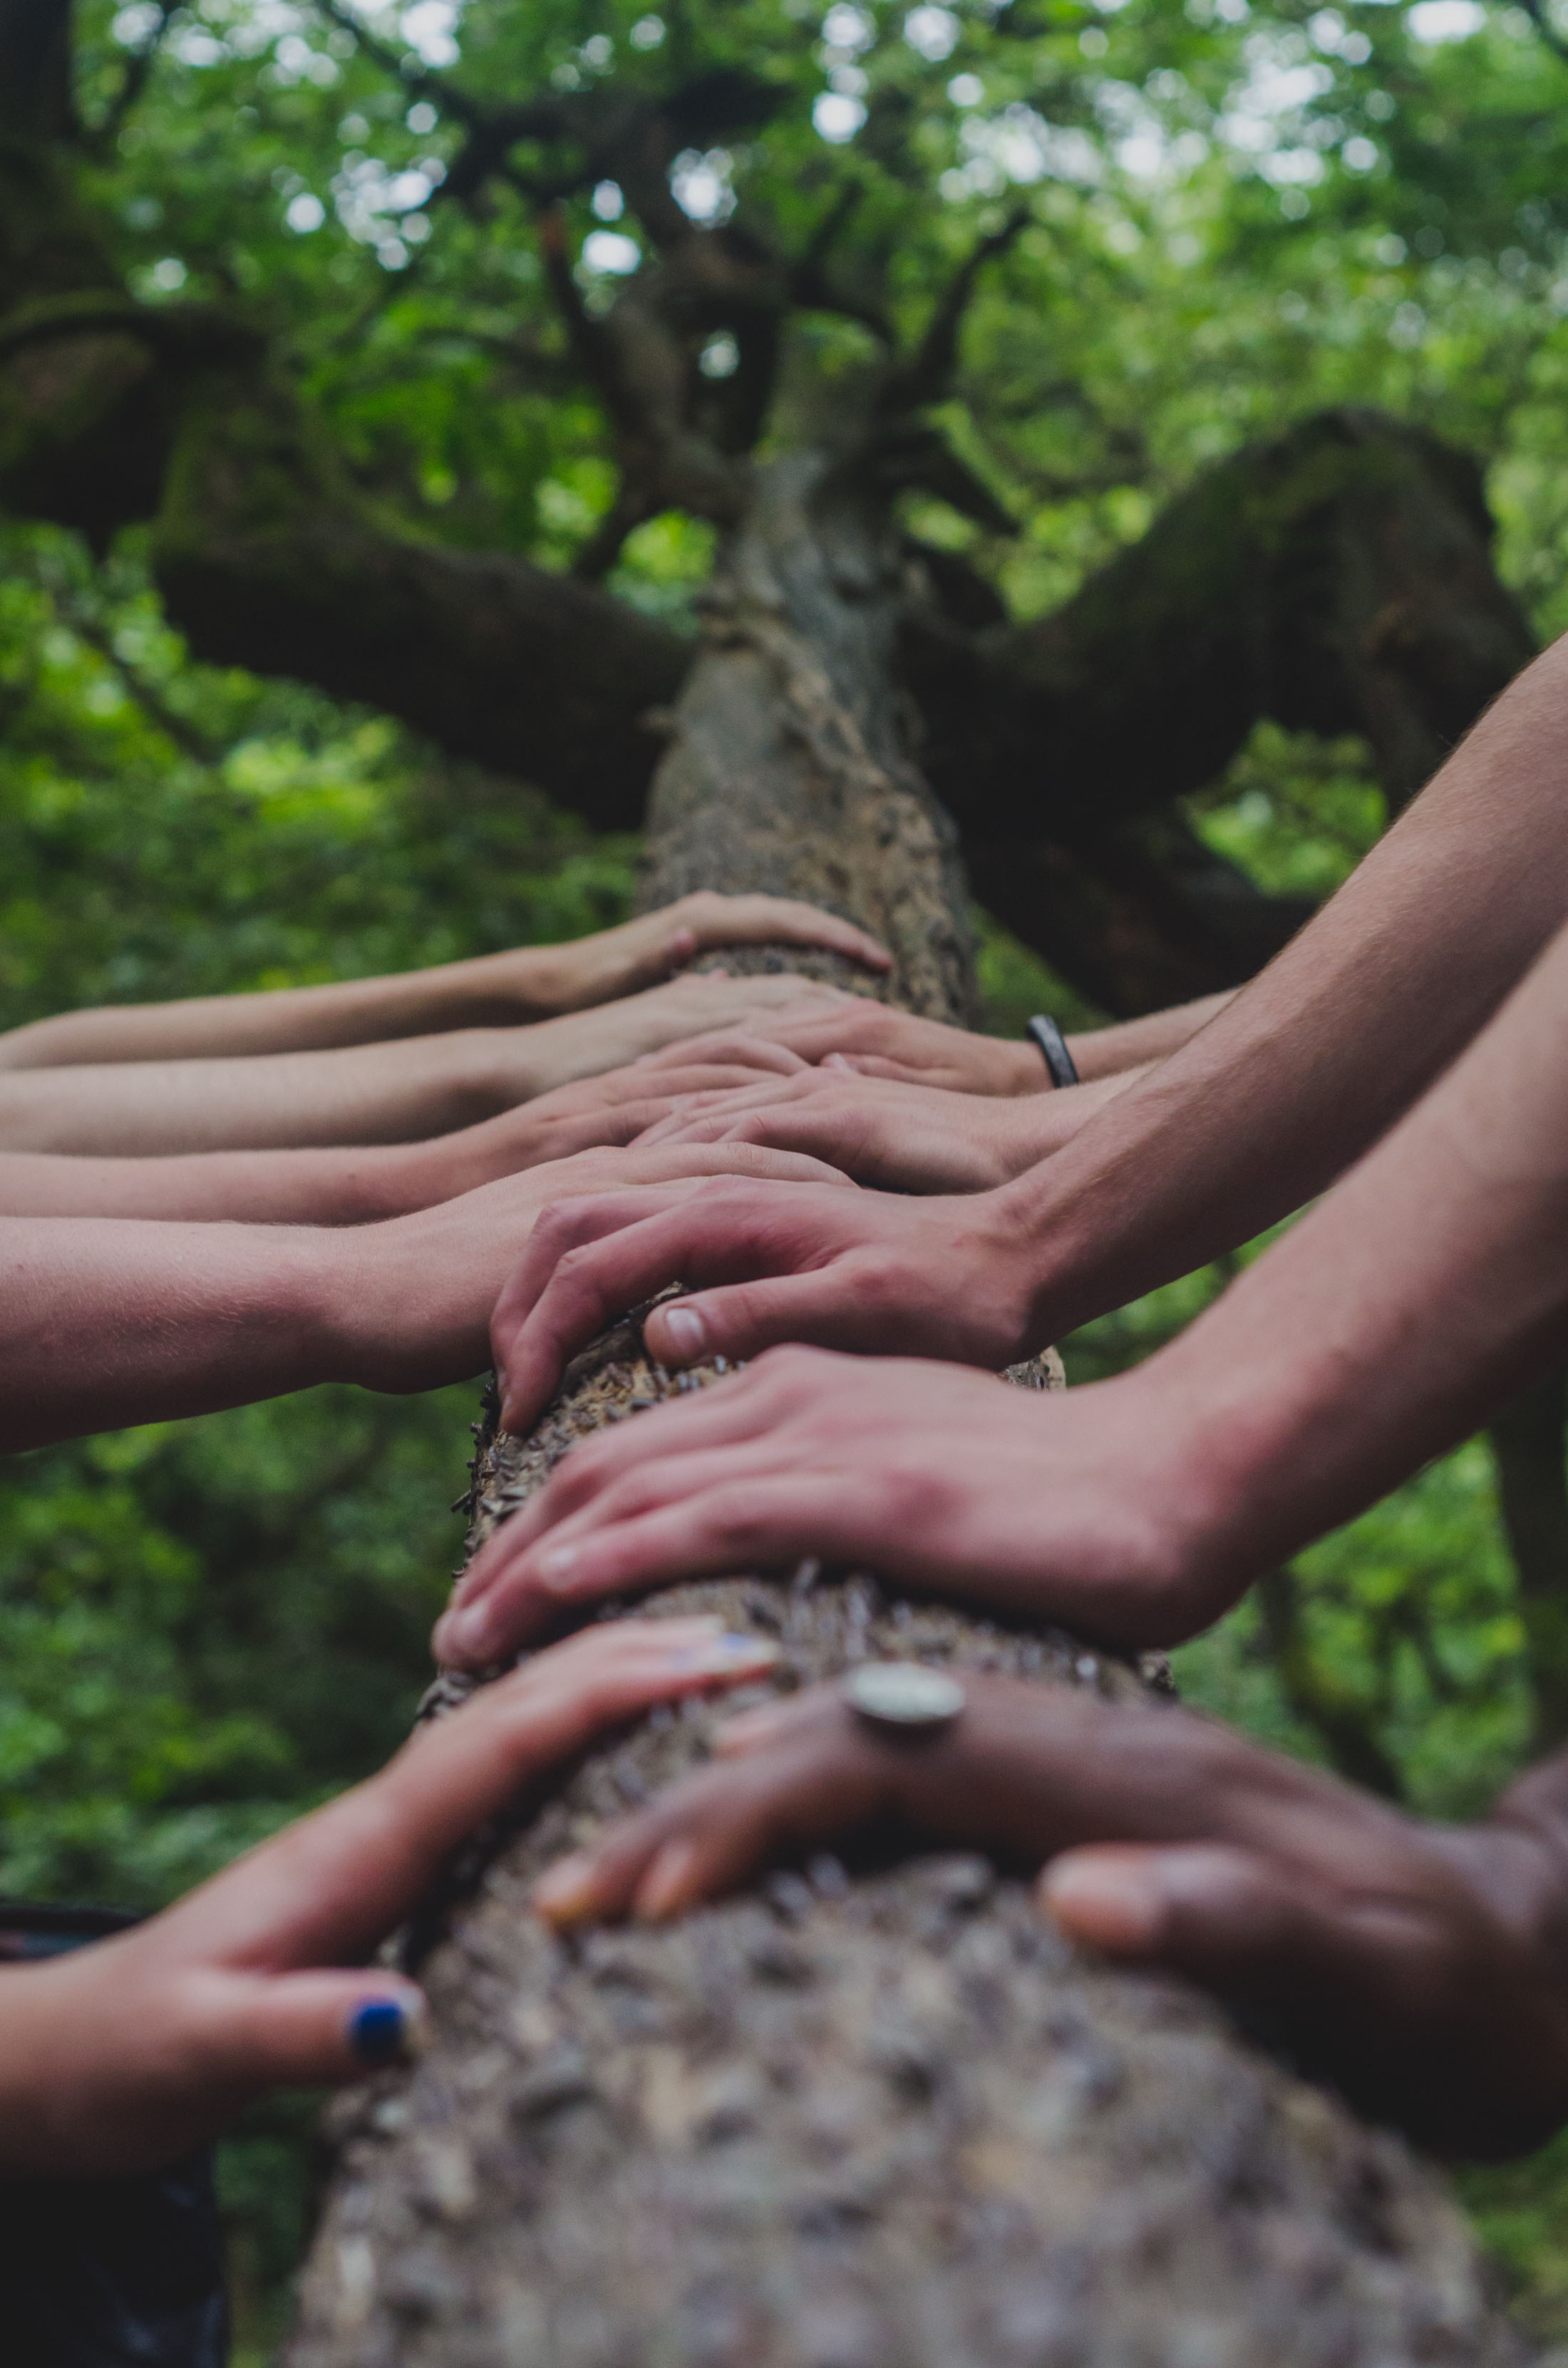 group of diverse people hands on tree trunk outdoors